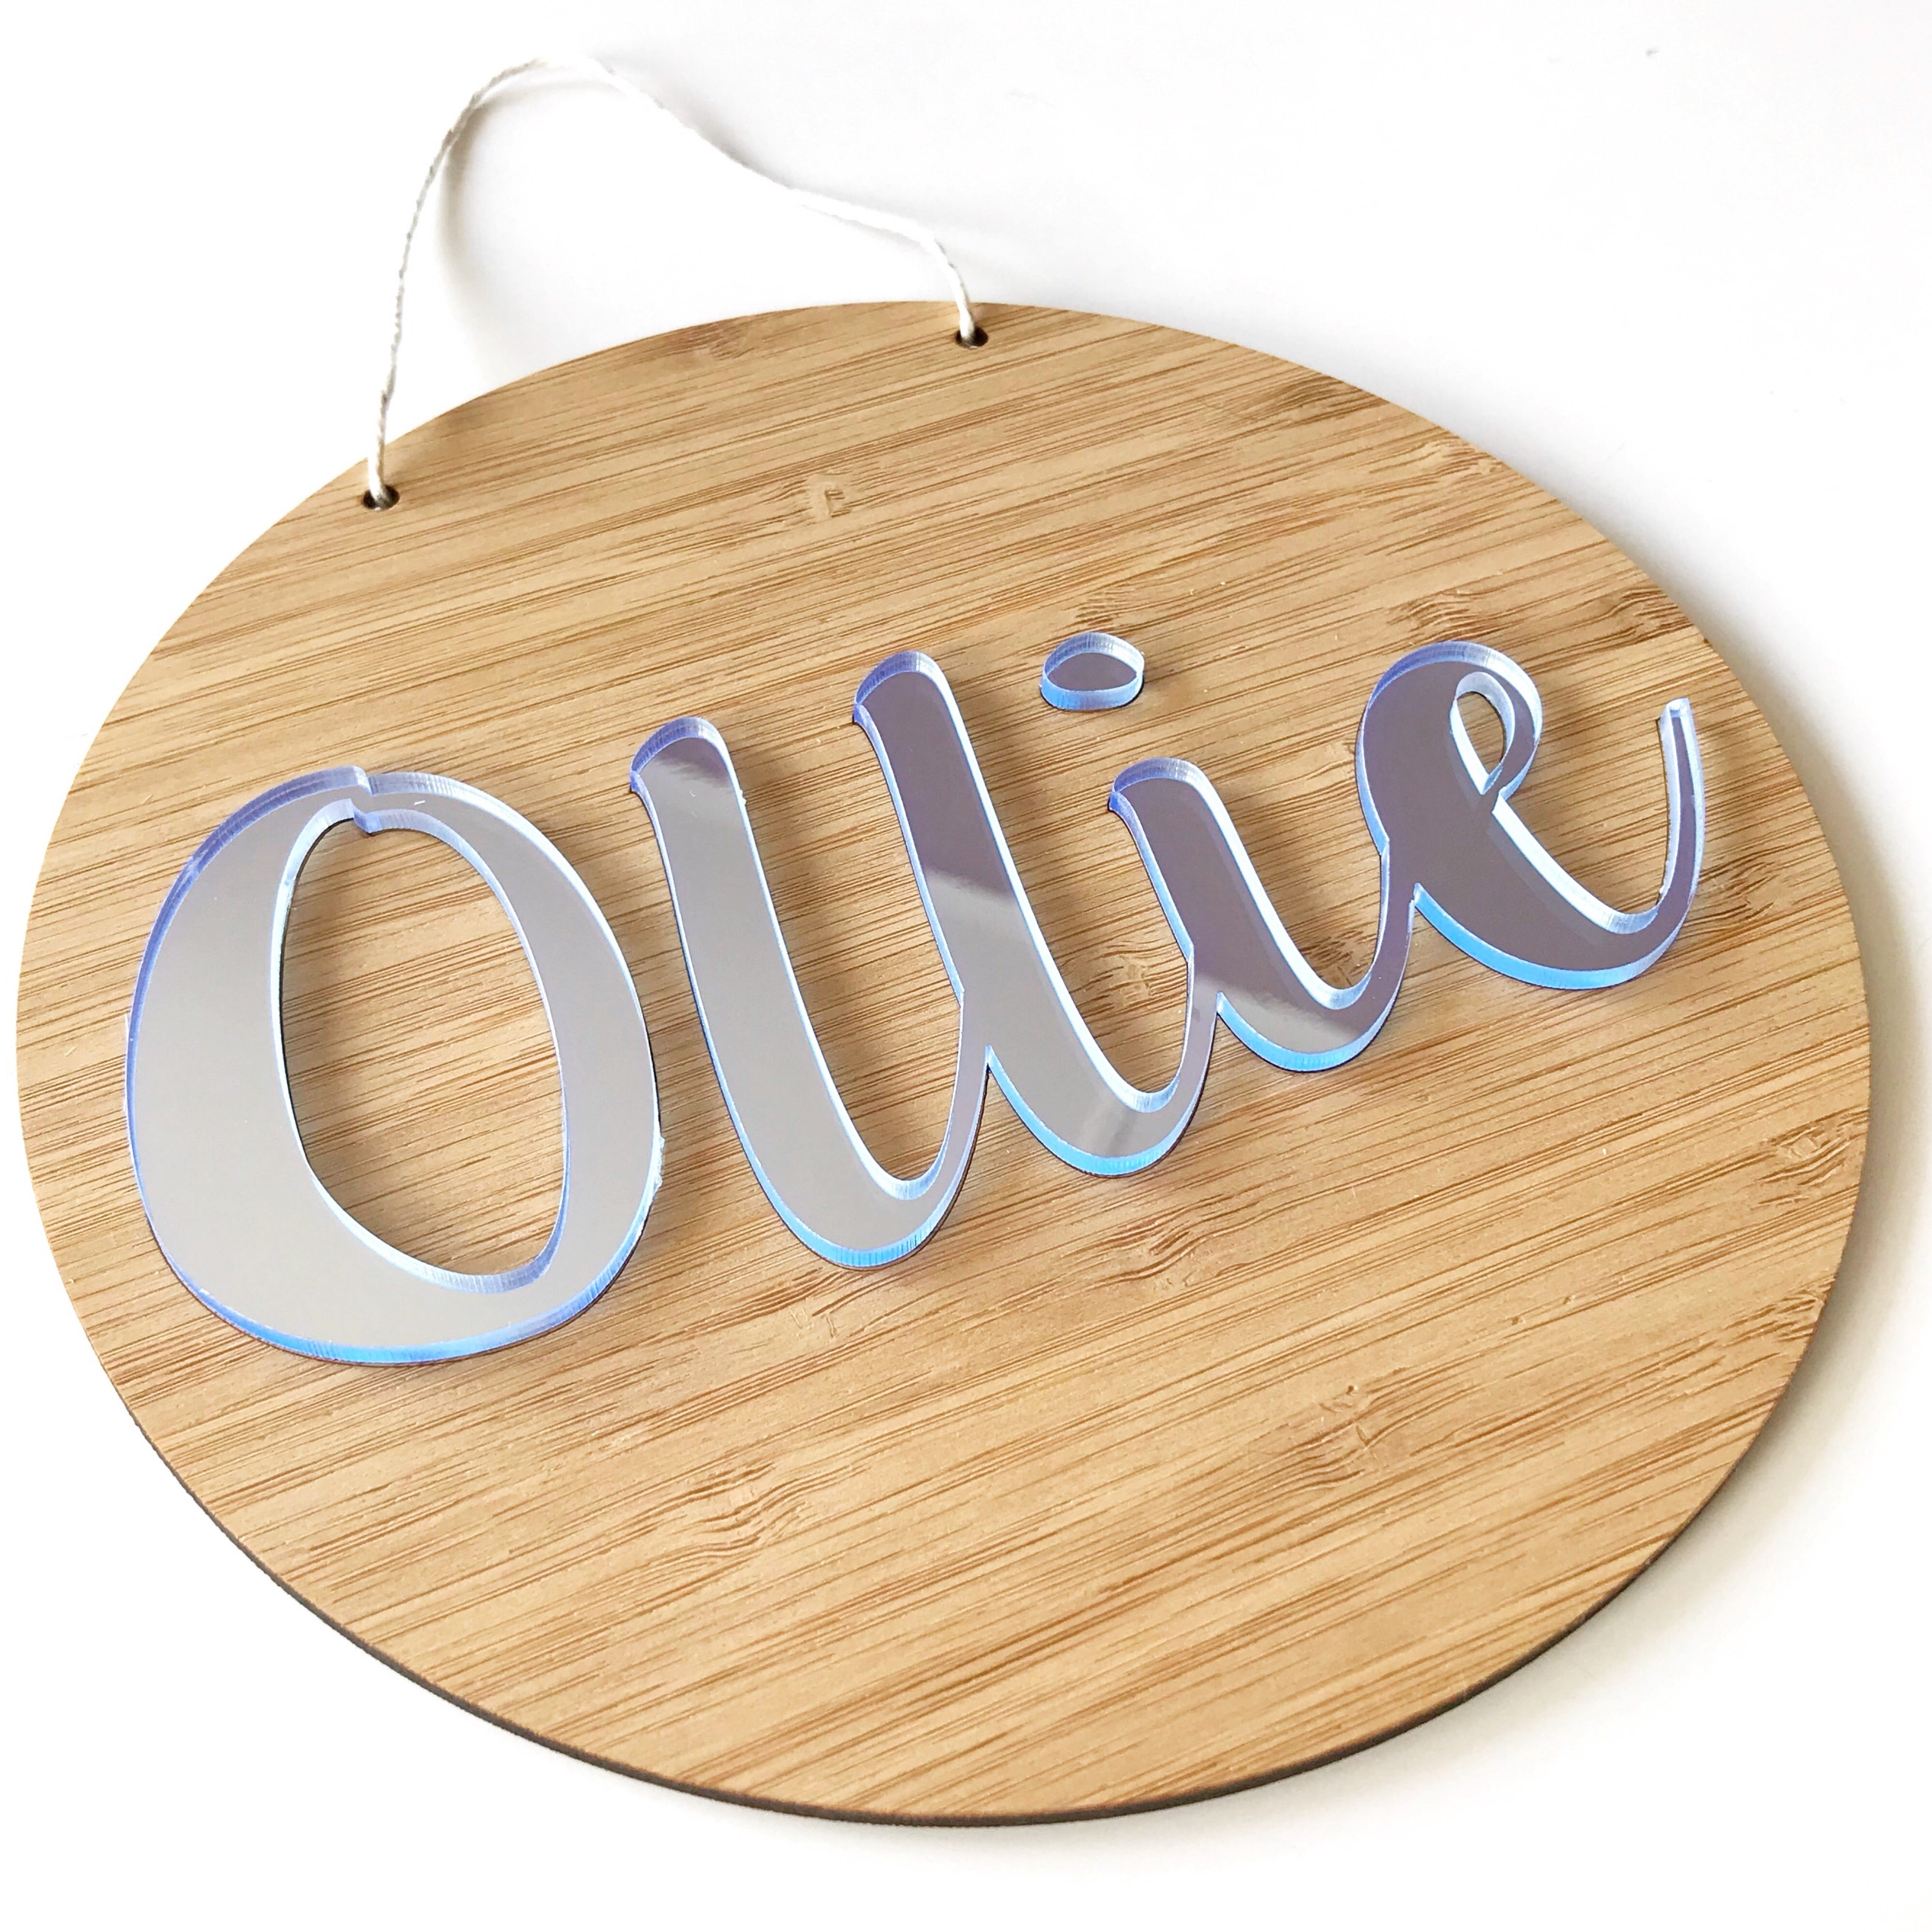 3D Name Wall Hangings – Inscribe Design